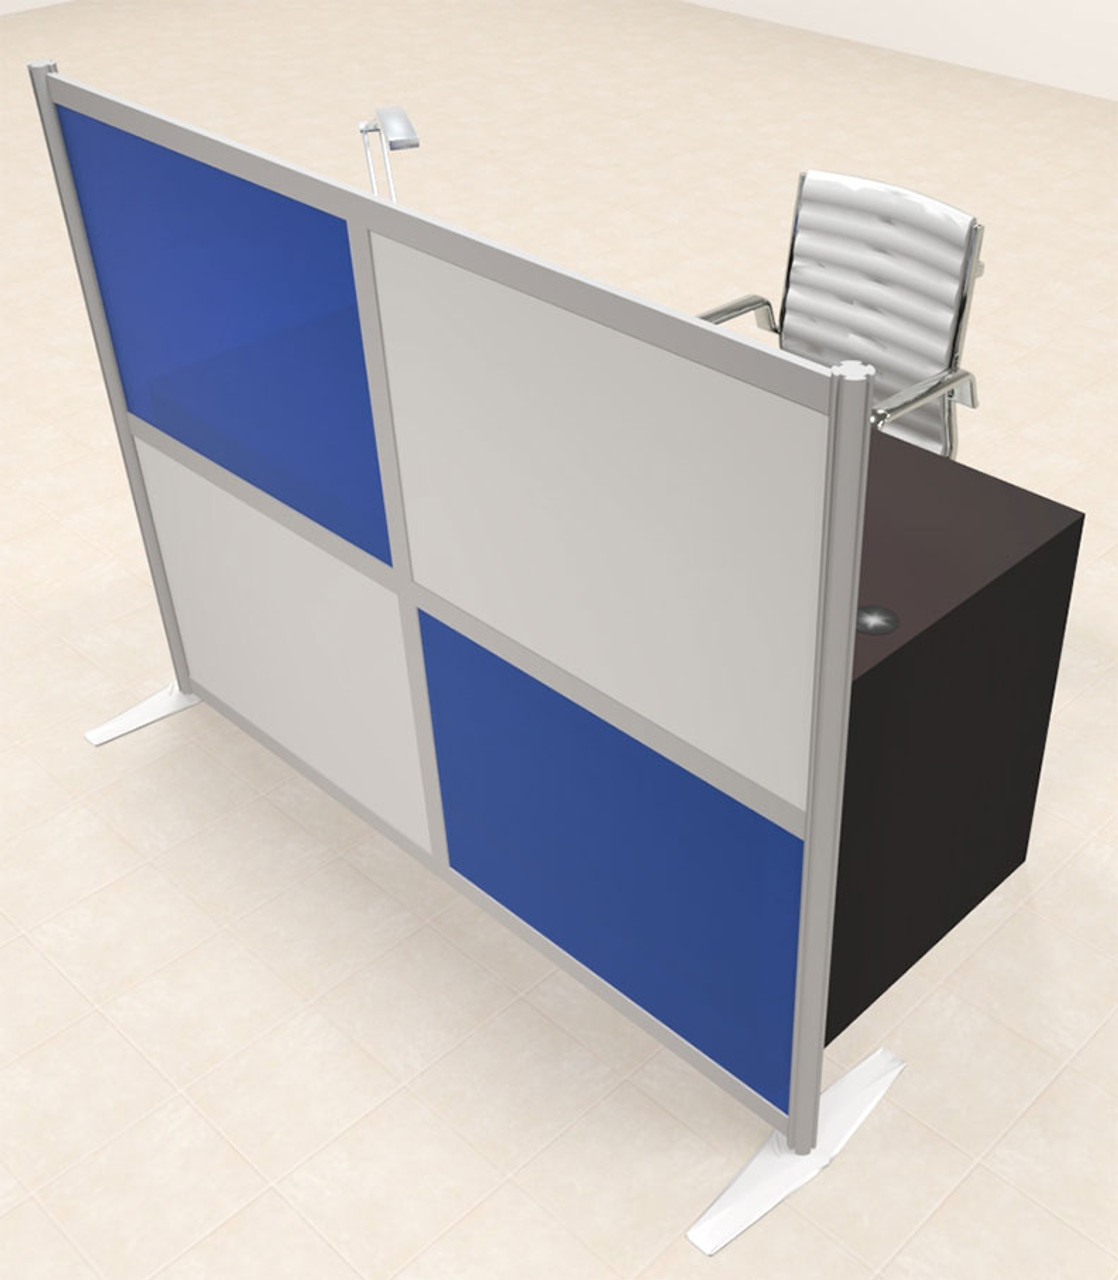 One Person Workstation w/Acrylic Aluminum Privacy Panel, #OT-SUL-HPB64